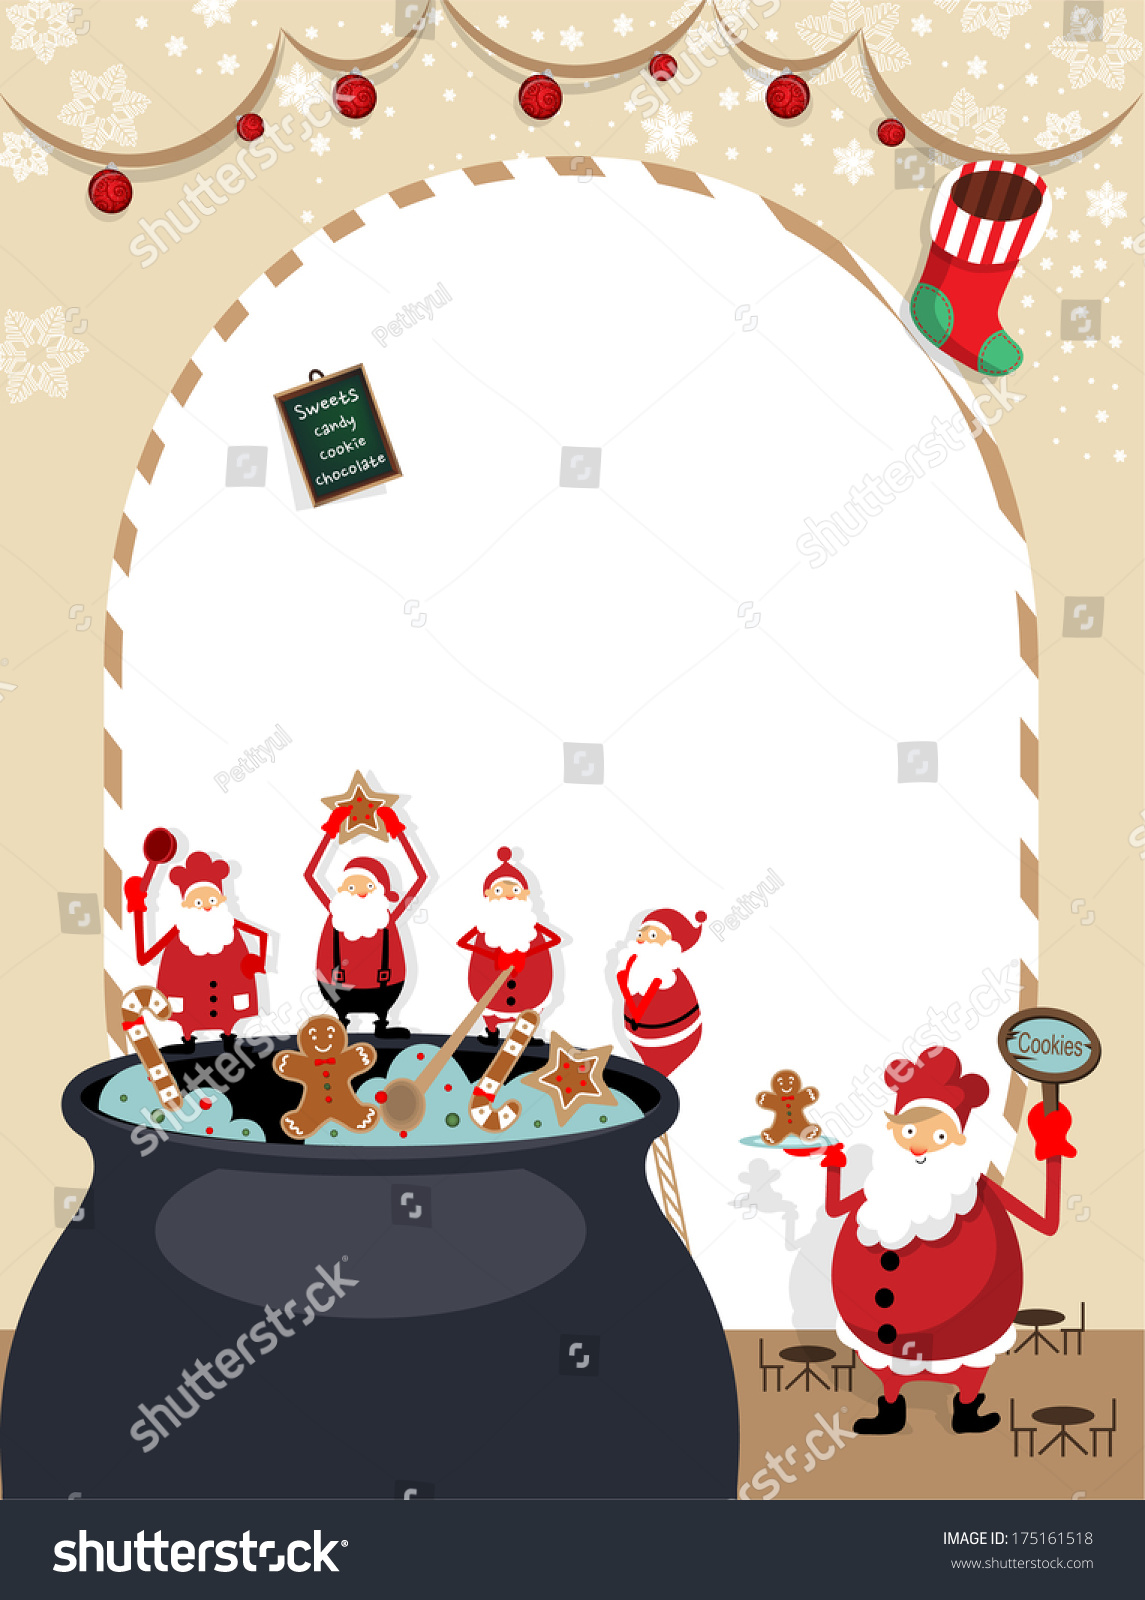 Christmas Cookie Funny Santa Cooking Together Stock Vector (Royalty ...